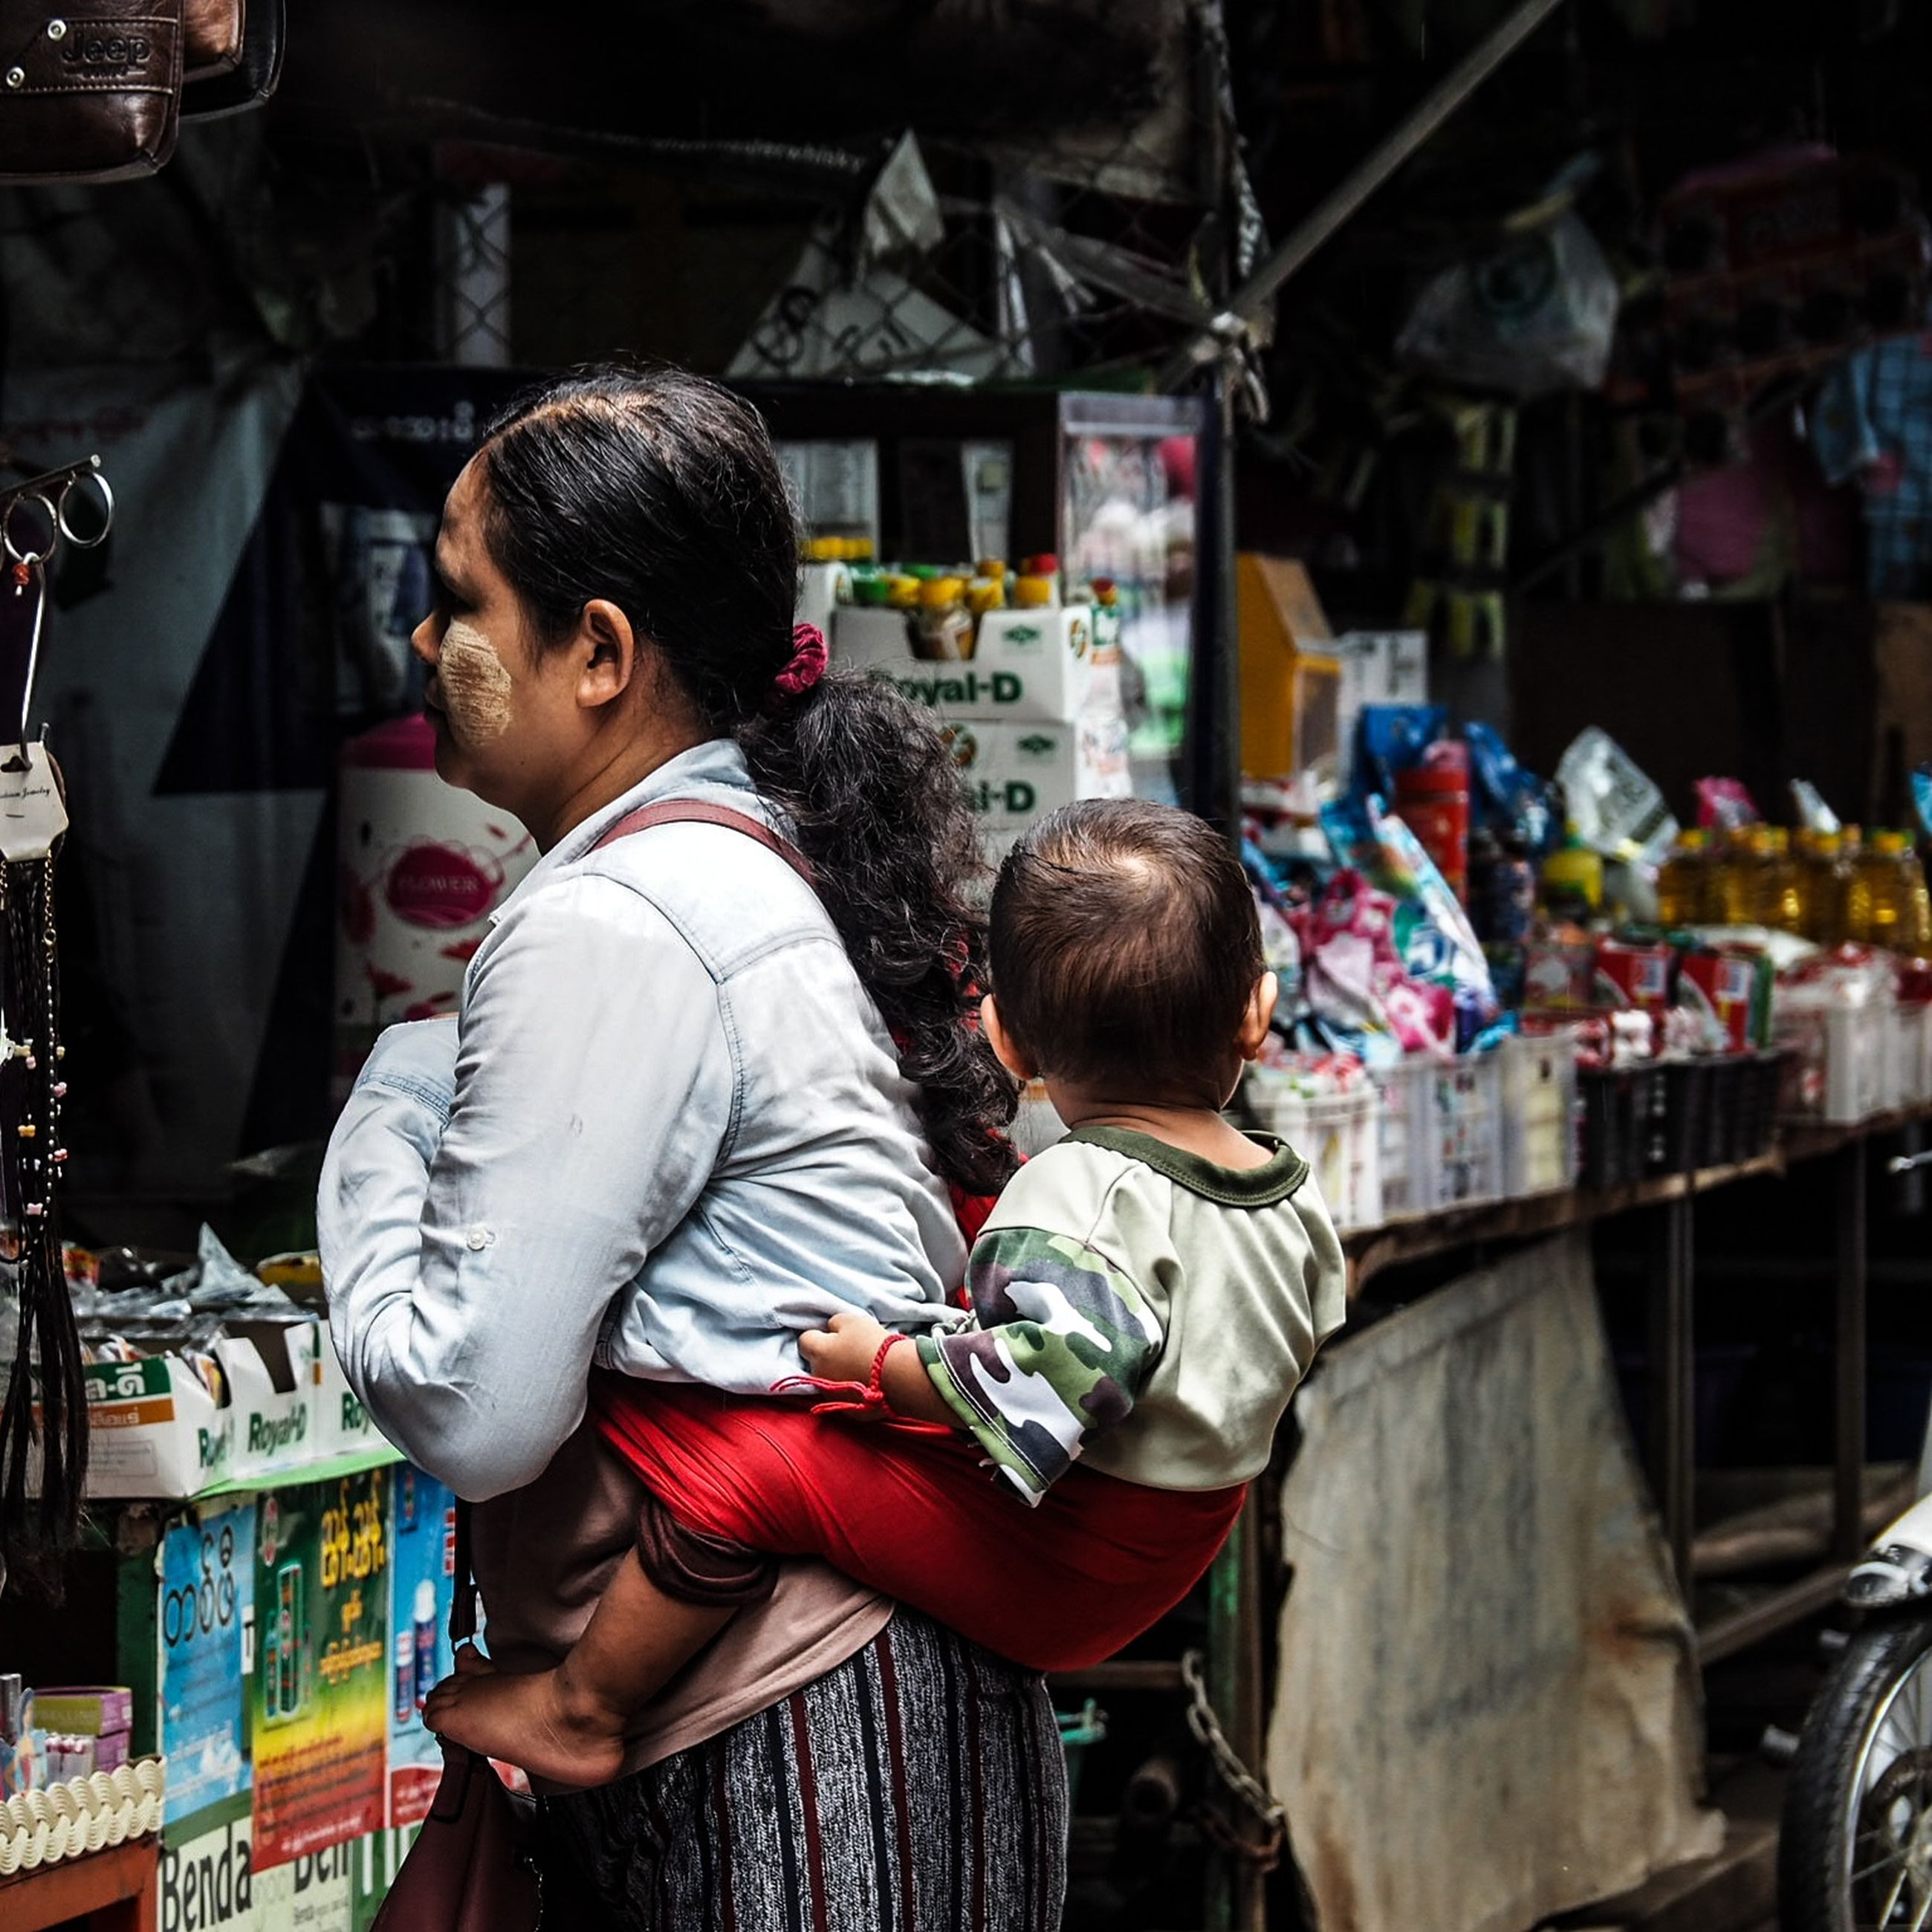 real people, men, lifestyles, two people, women, standing, casual clothing, three quarter length, retail, rear view, market, child, business, childhood, store, market stall, choice, shopping, leisure activity, people, buying, retail display, positive emotion, hairstyle, son